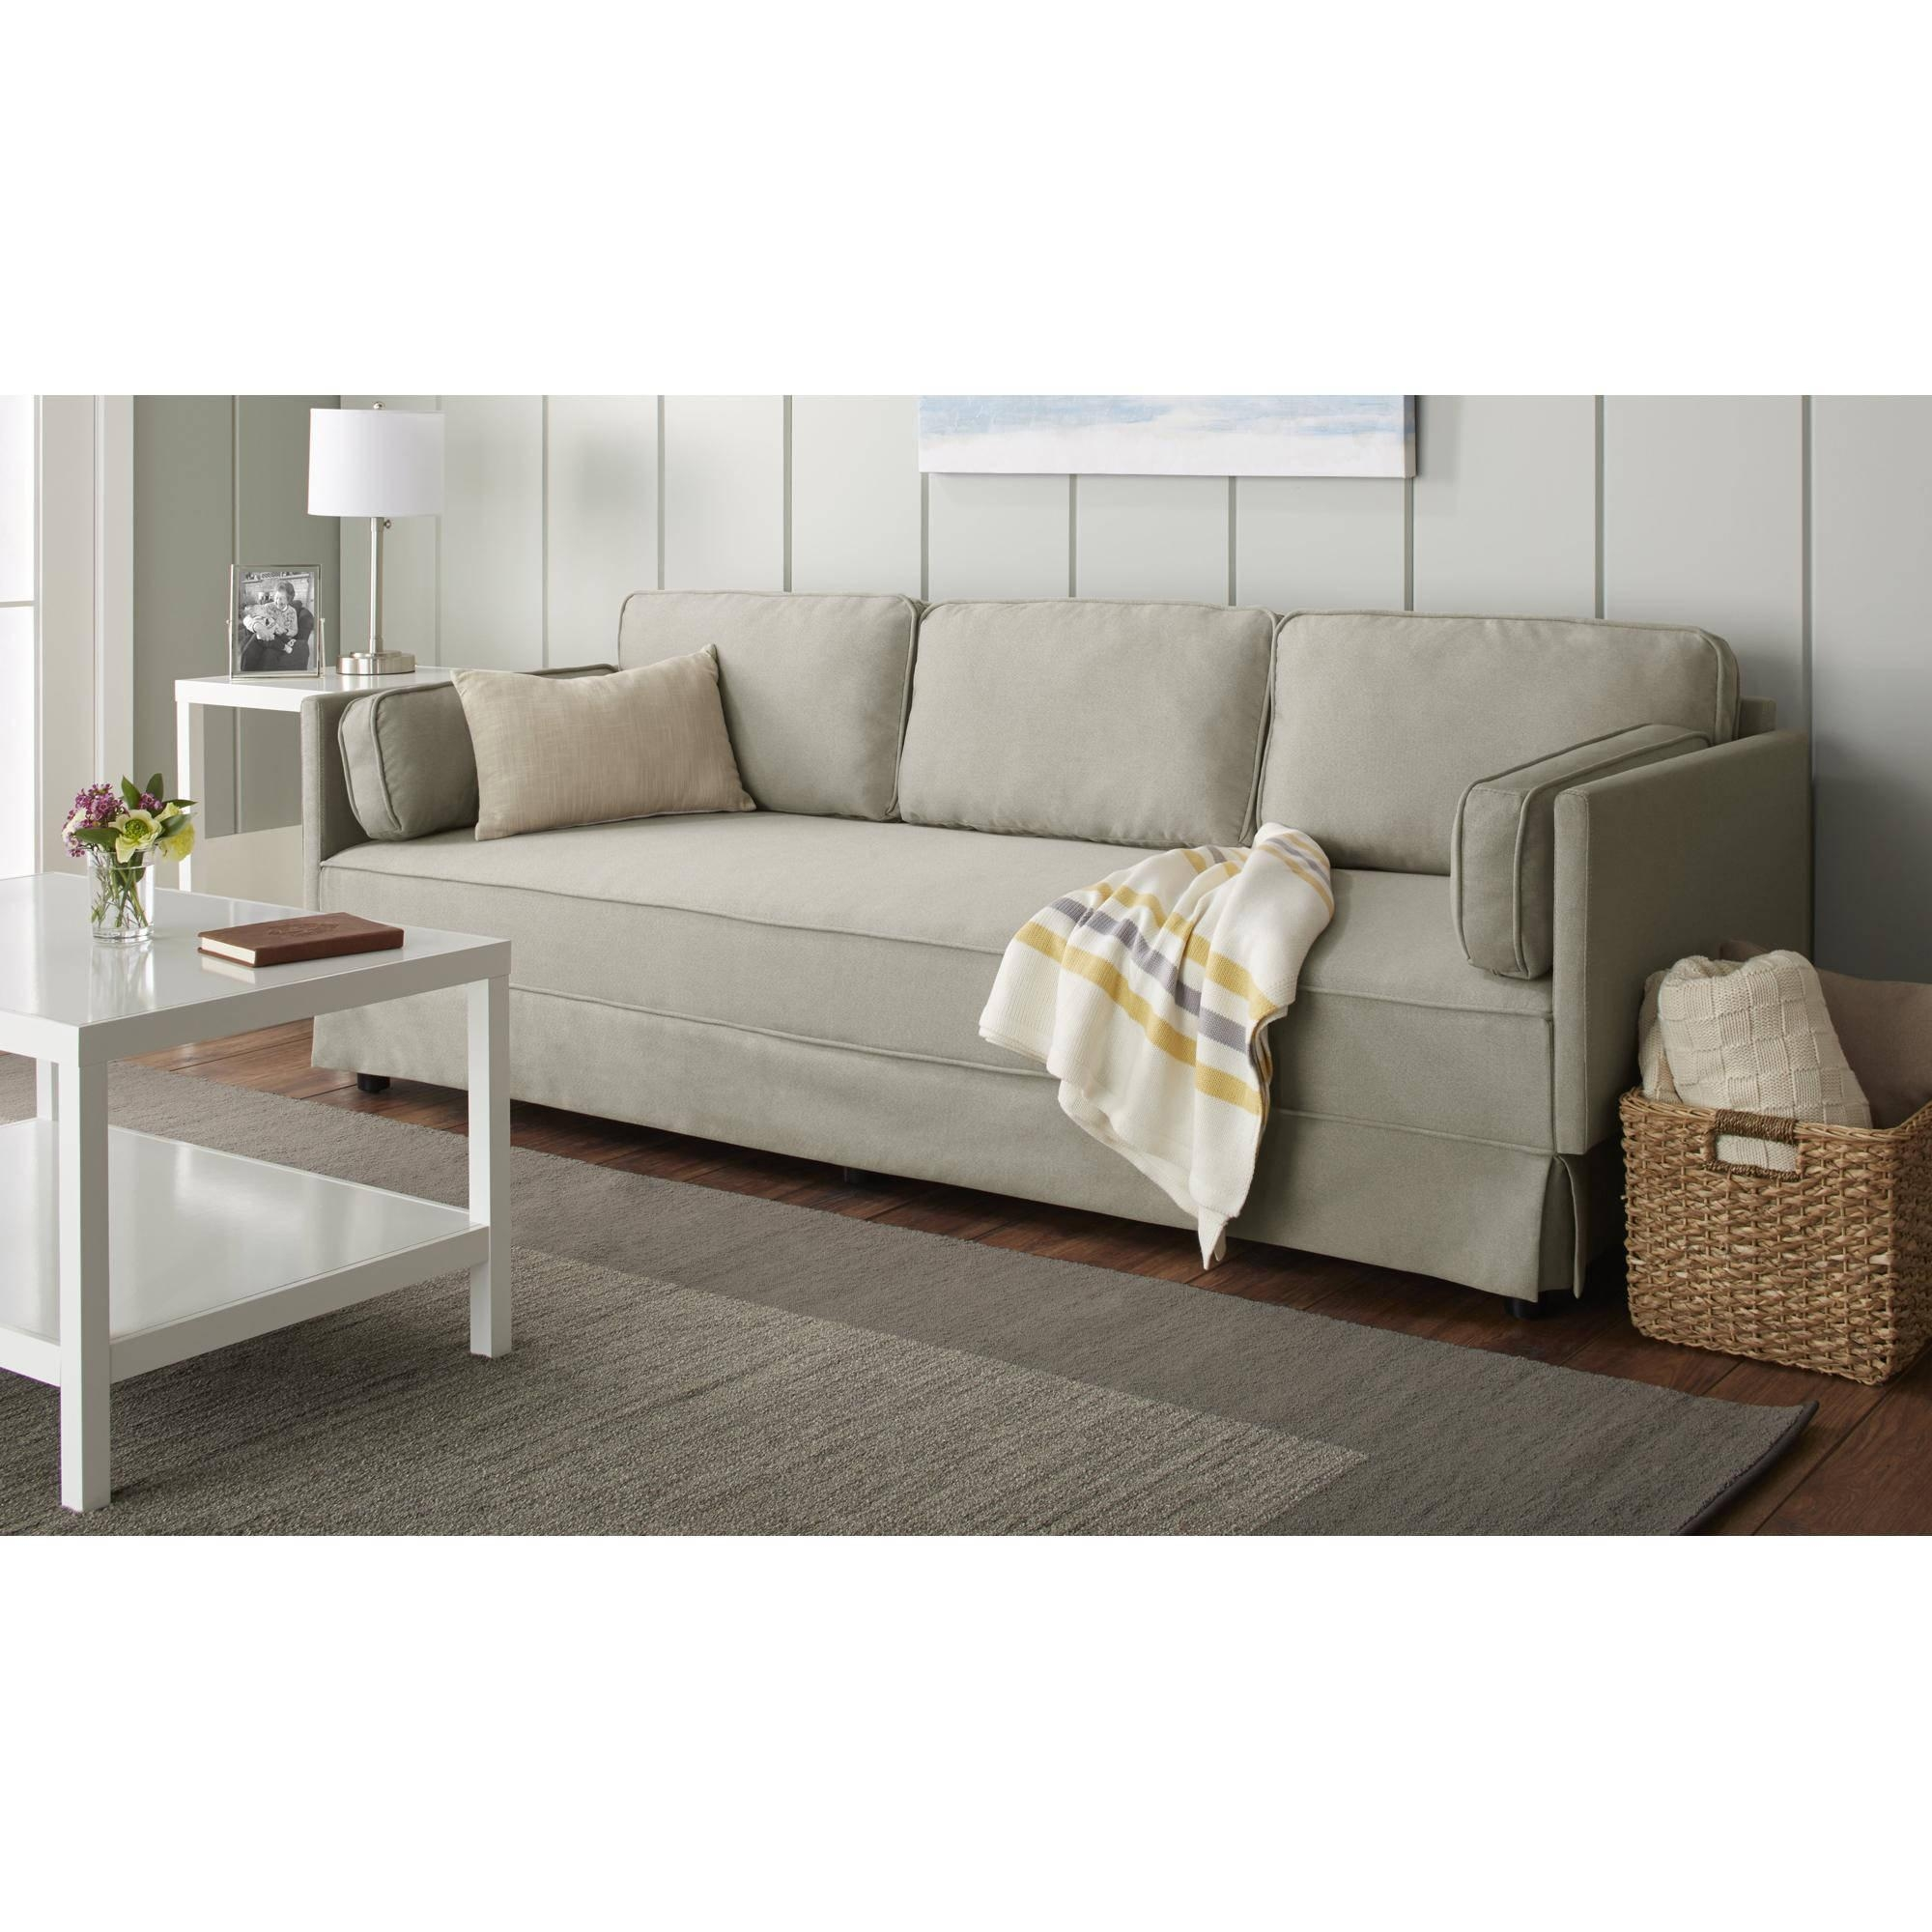 10 Spring Street Durant Sofa, Multiple Colors – Walmart With Wallmart Sofa (View 12 of 20)